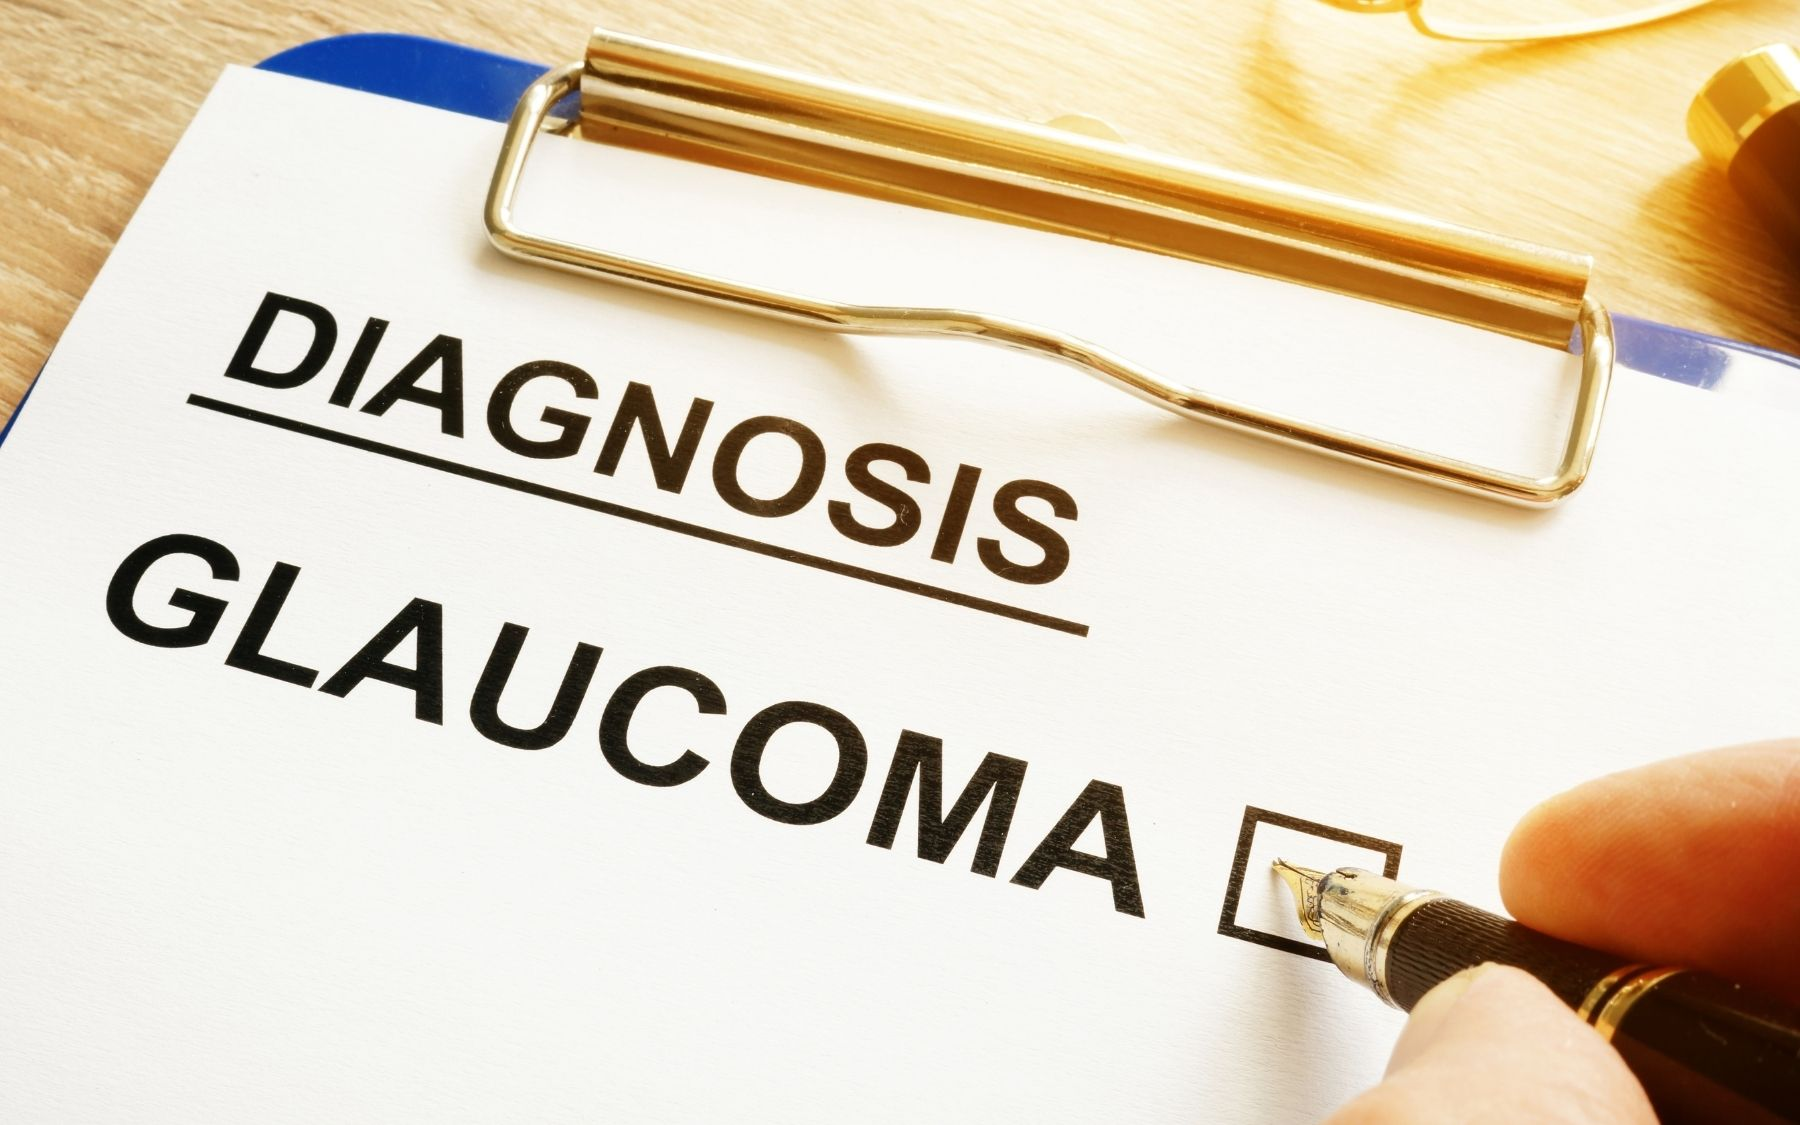 Glaucoma - An overview